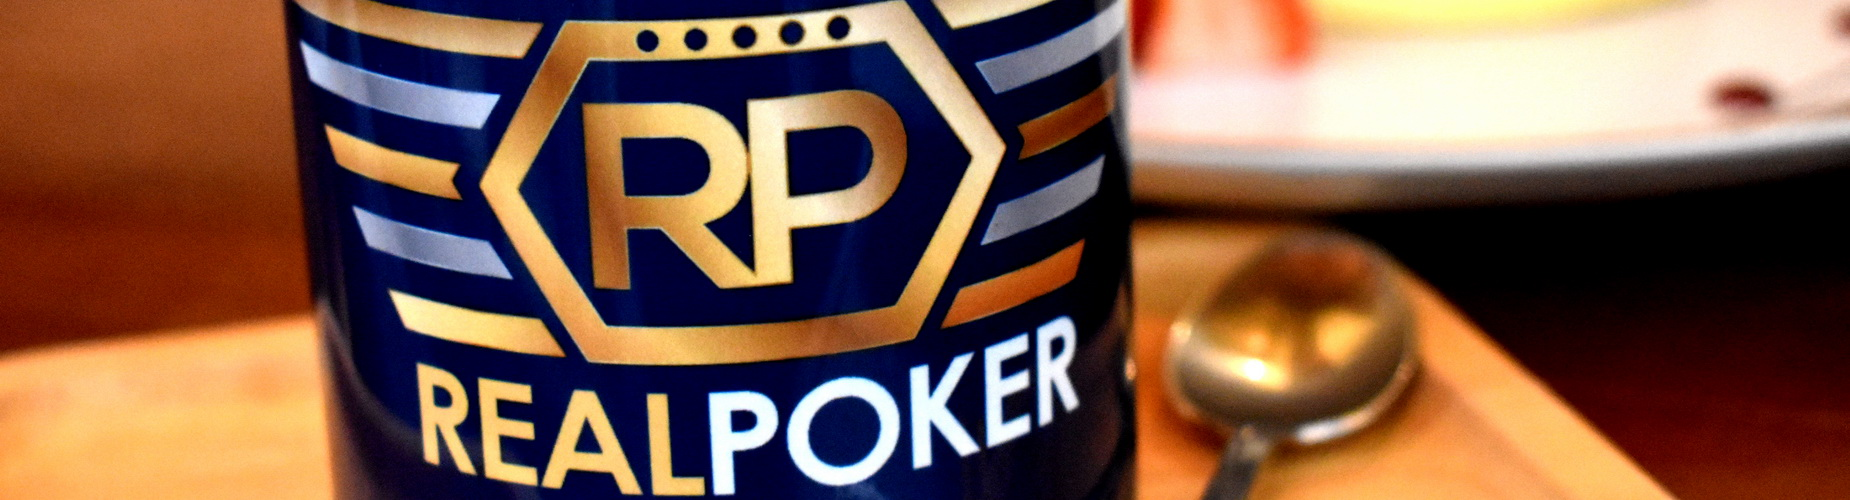 Poker chips online converted from your cash